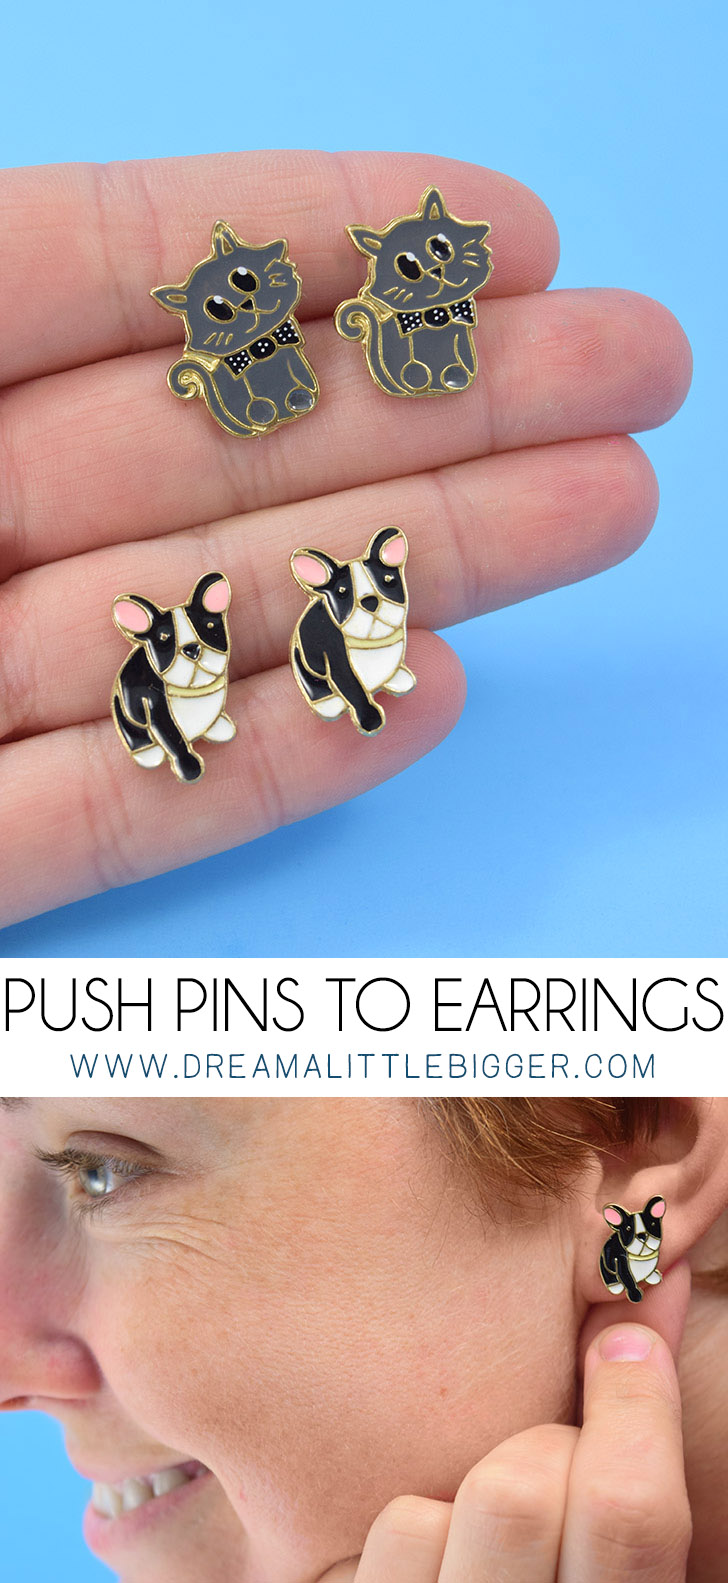 Turn cute every day objects into earrings, like these push pins! So cool!